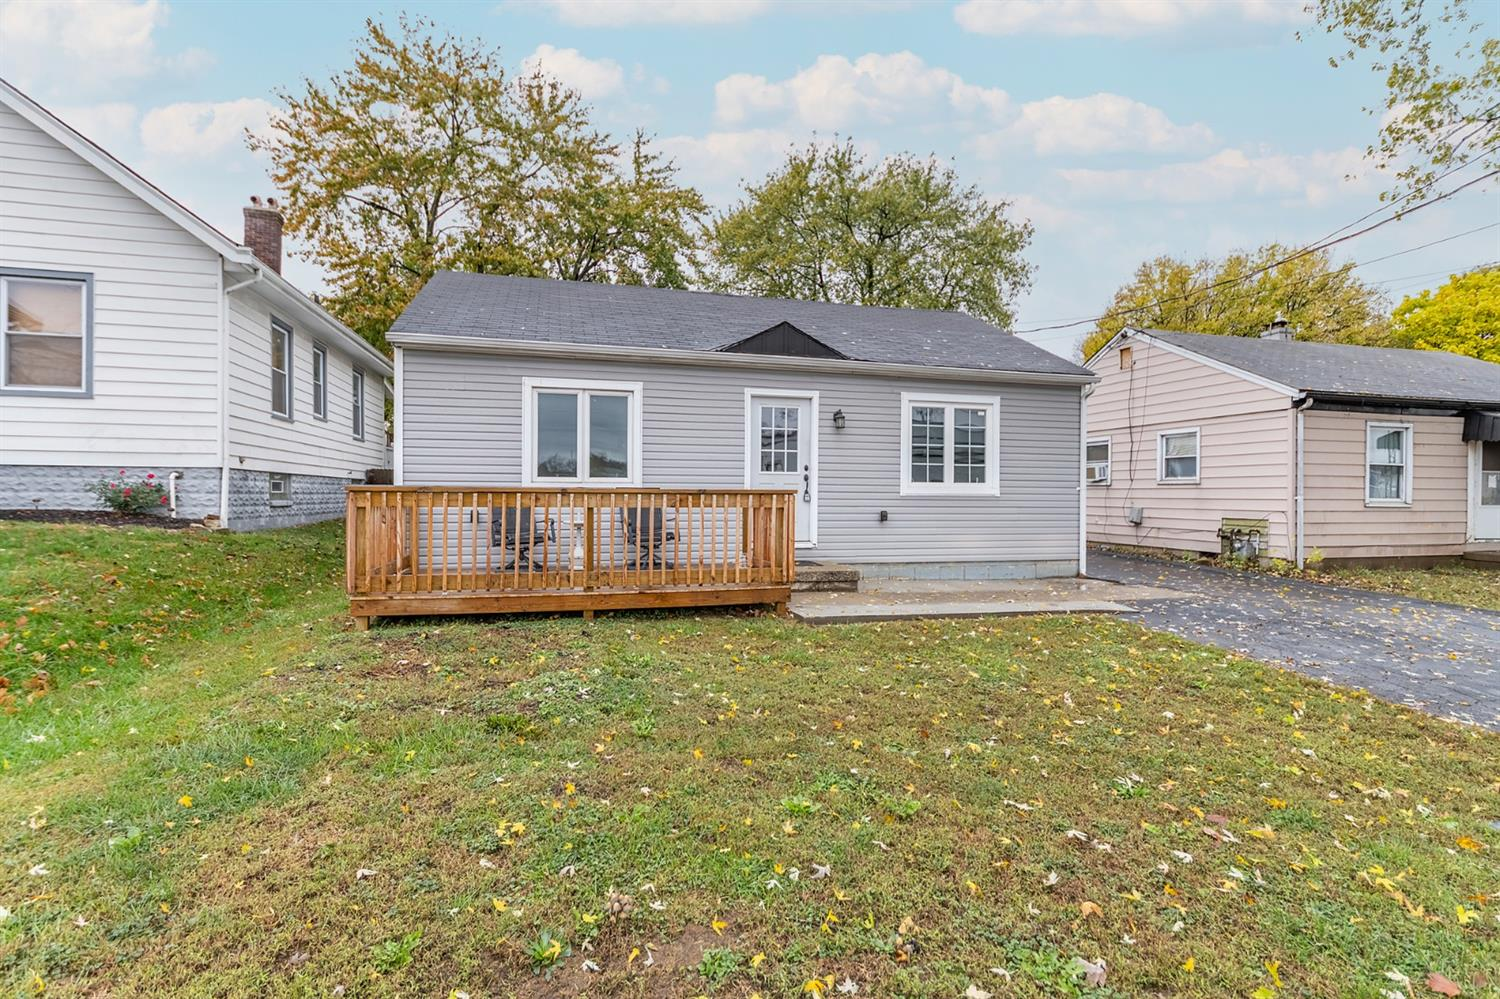 Photo 3 for 705 Shepherd Ave Lockland, OH 45215